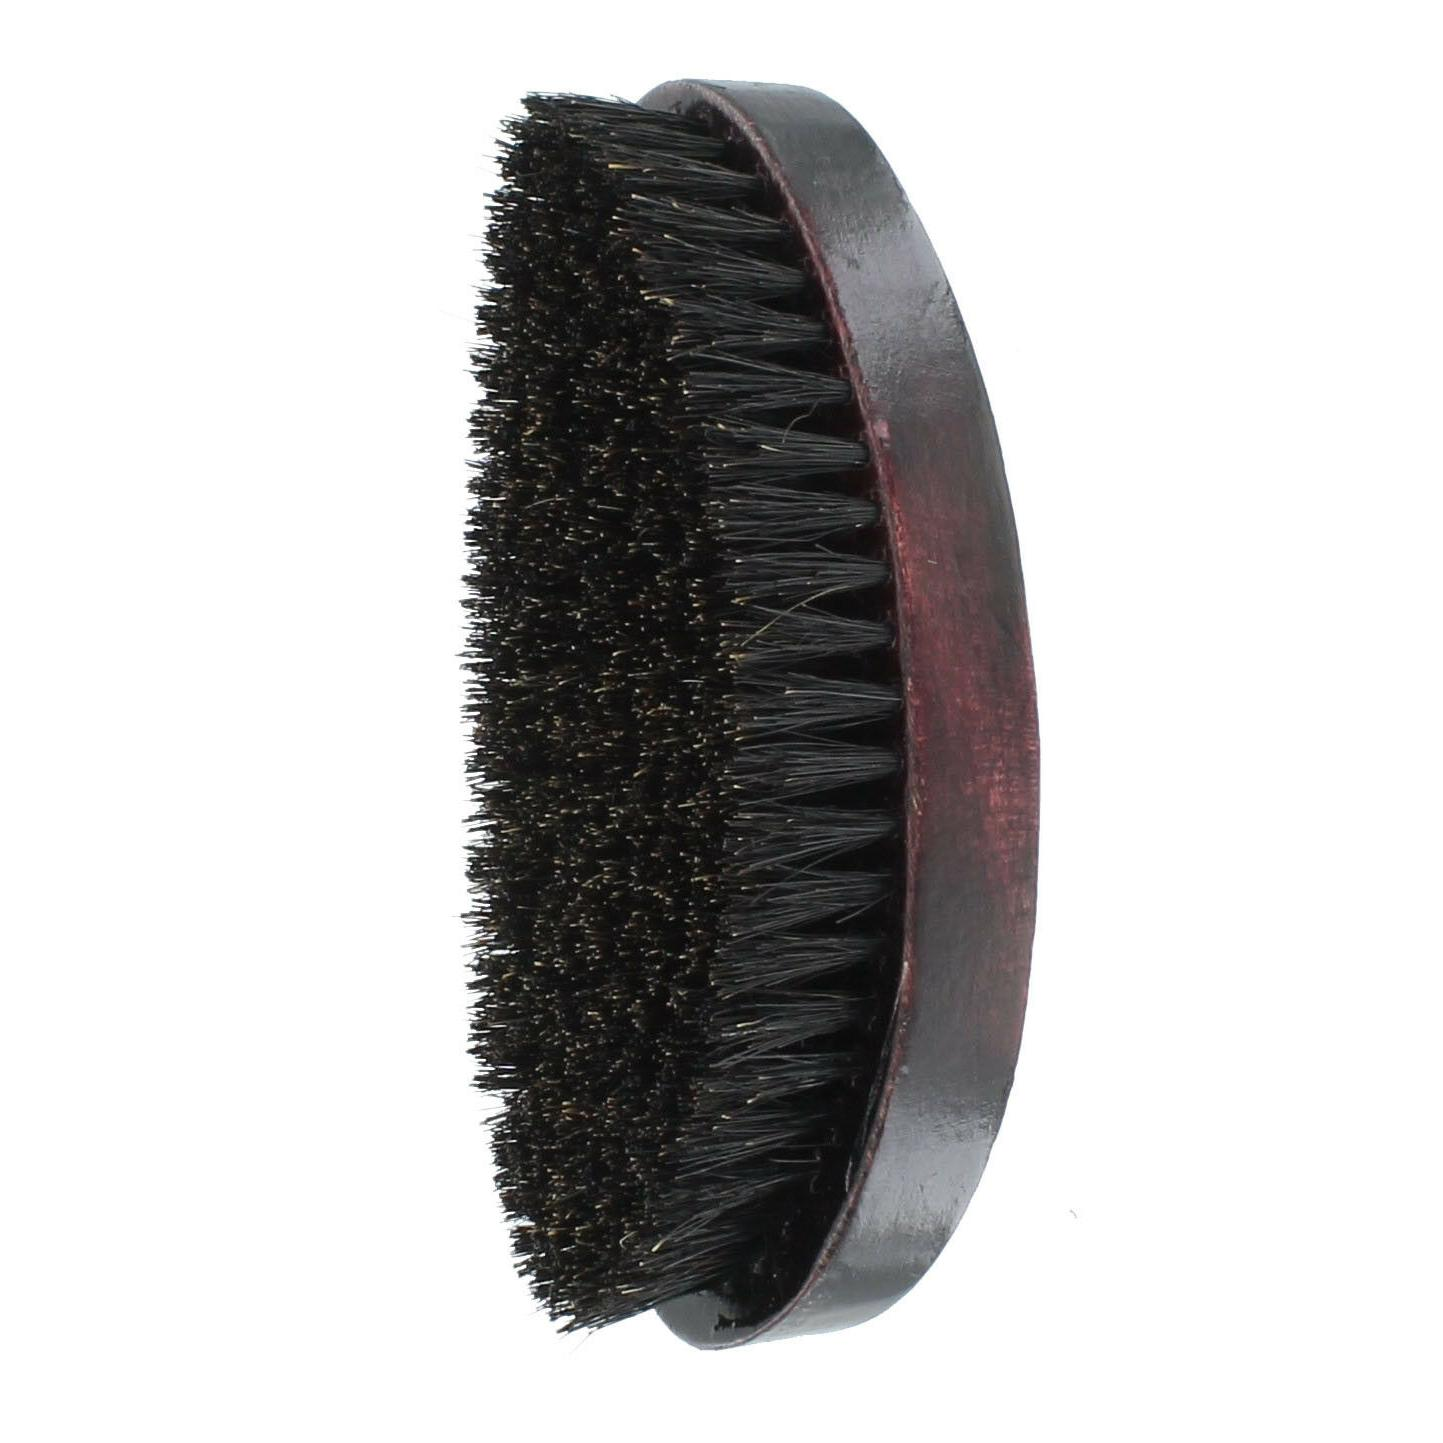 Curved Wave Hair Military Brush